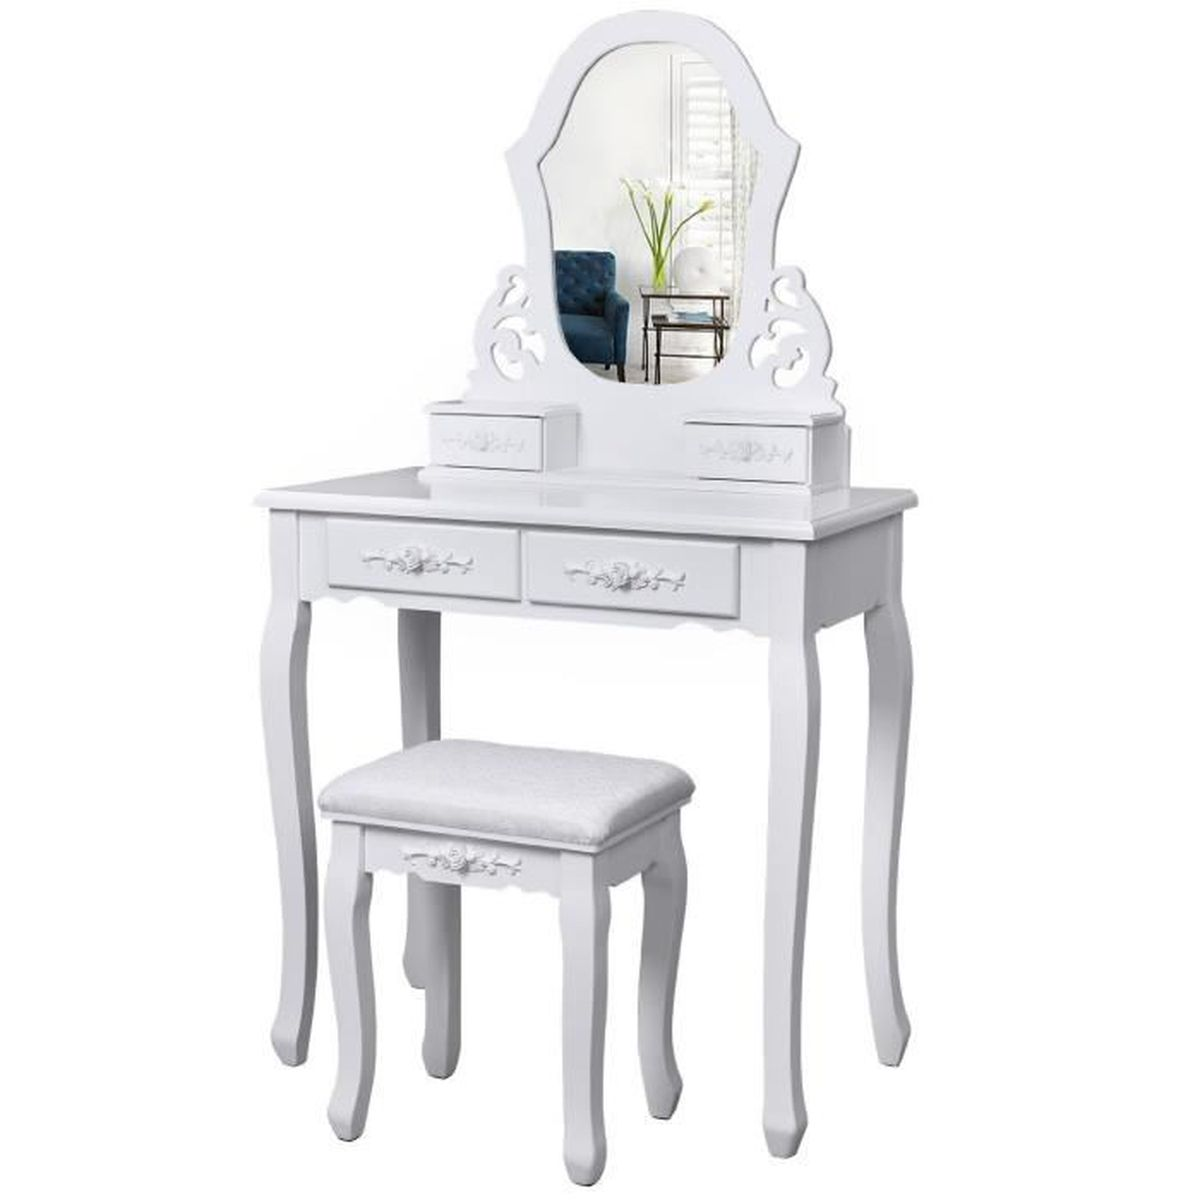 tulipe coiffeuse blanche table de maquillage avec miroir 4 tiroirs s parations pour tiroirs et. Black Bedroom Furniture Sets. Home Design Ideas